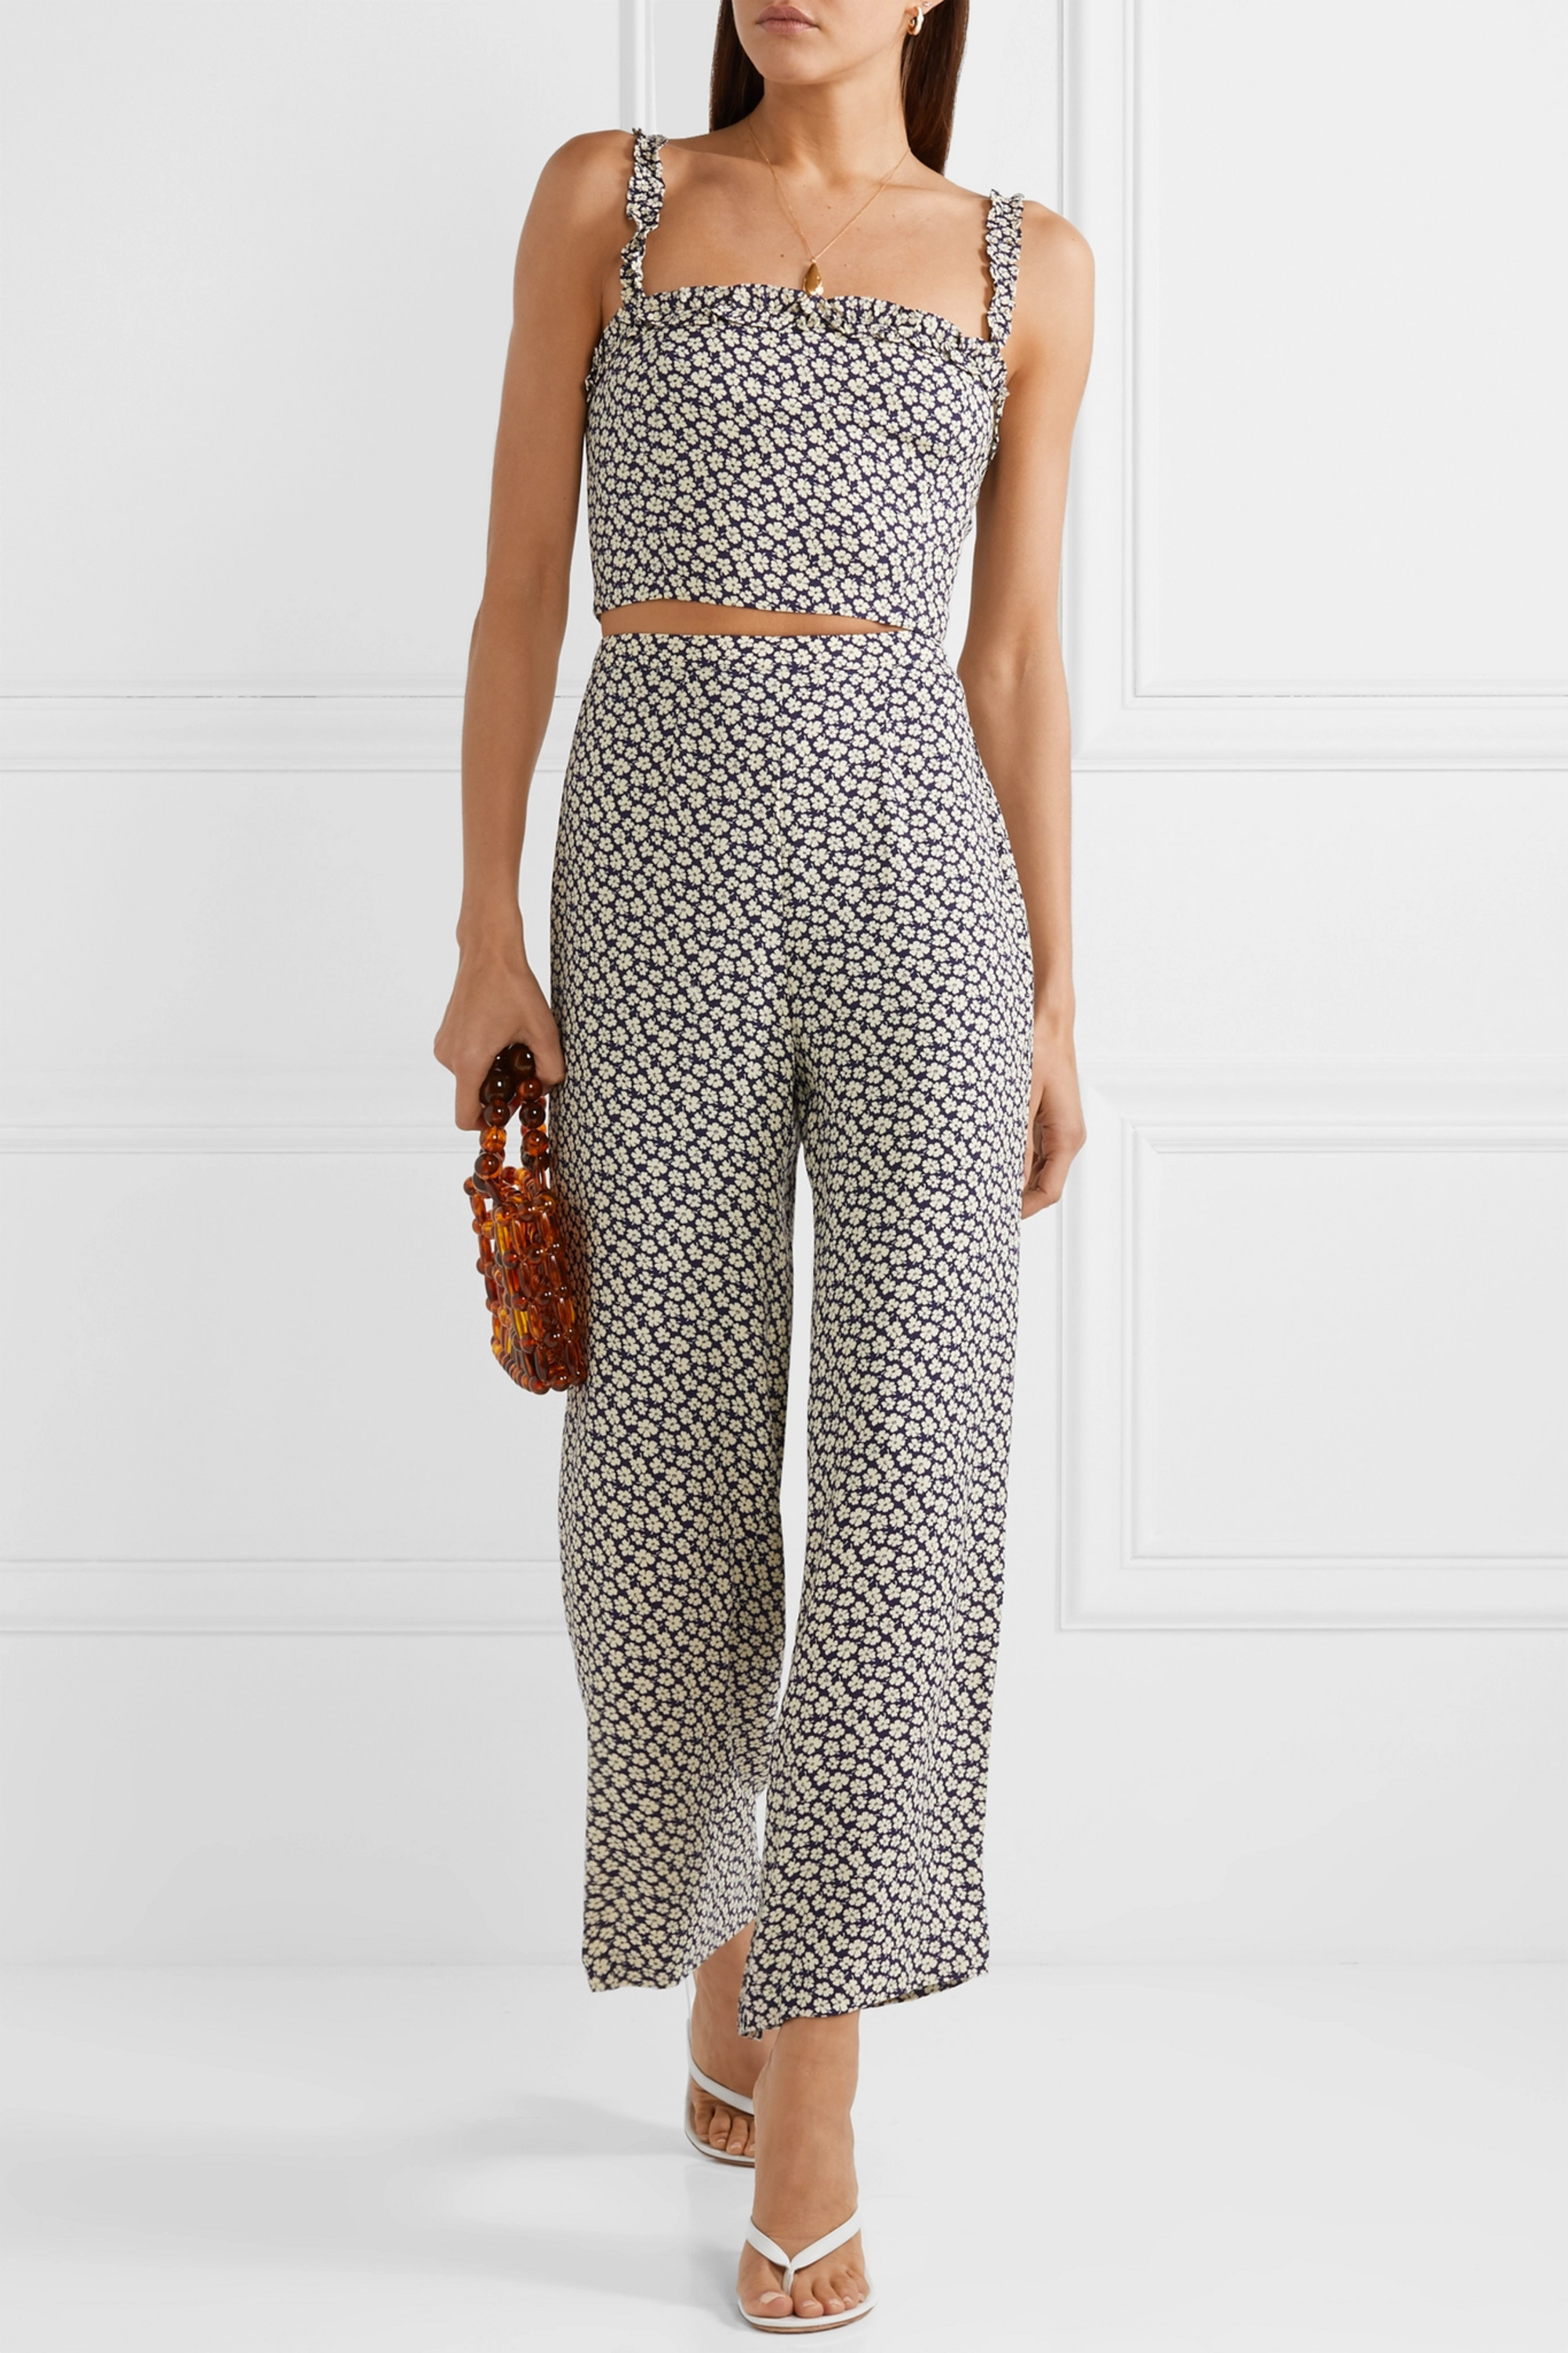 Reformation Coco floral-print crepe top and pants set